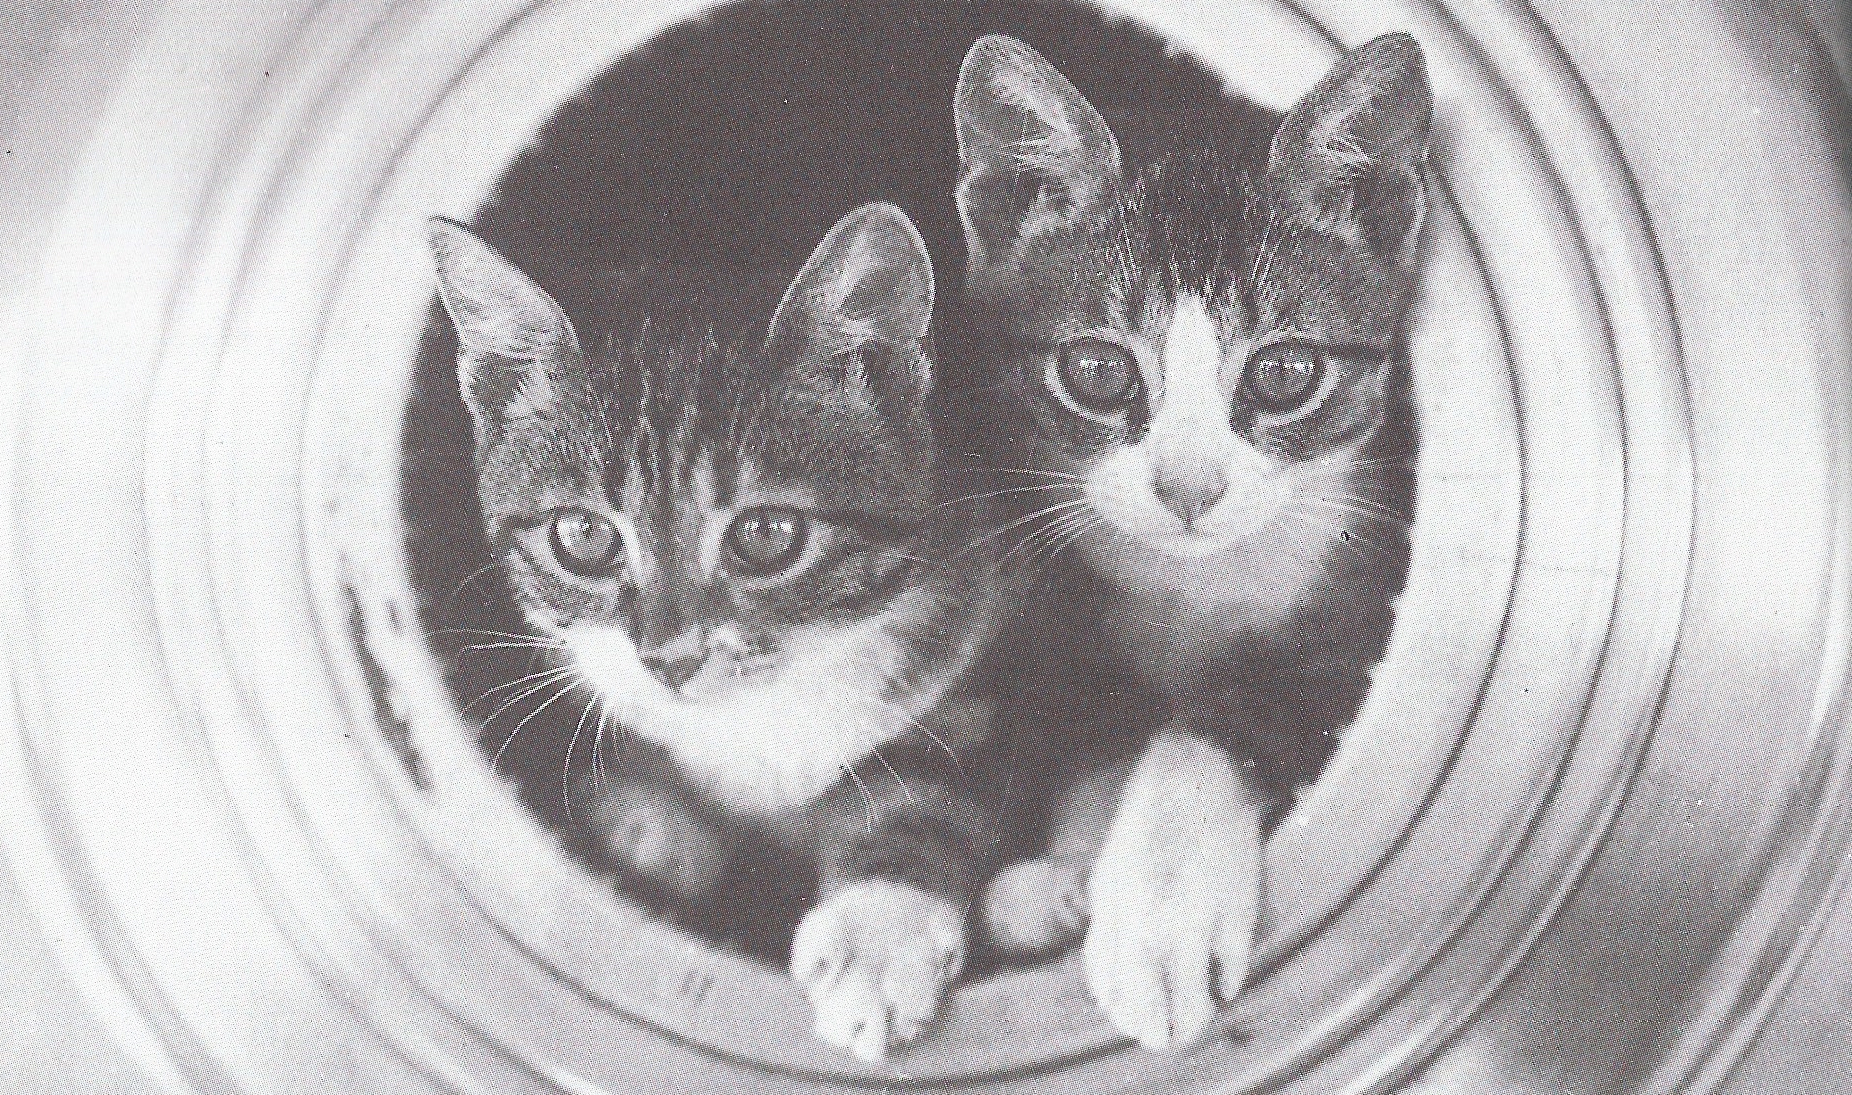 kittens-in-canons-featured-pic-cropped.jpg